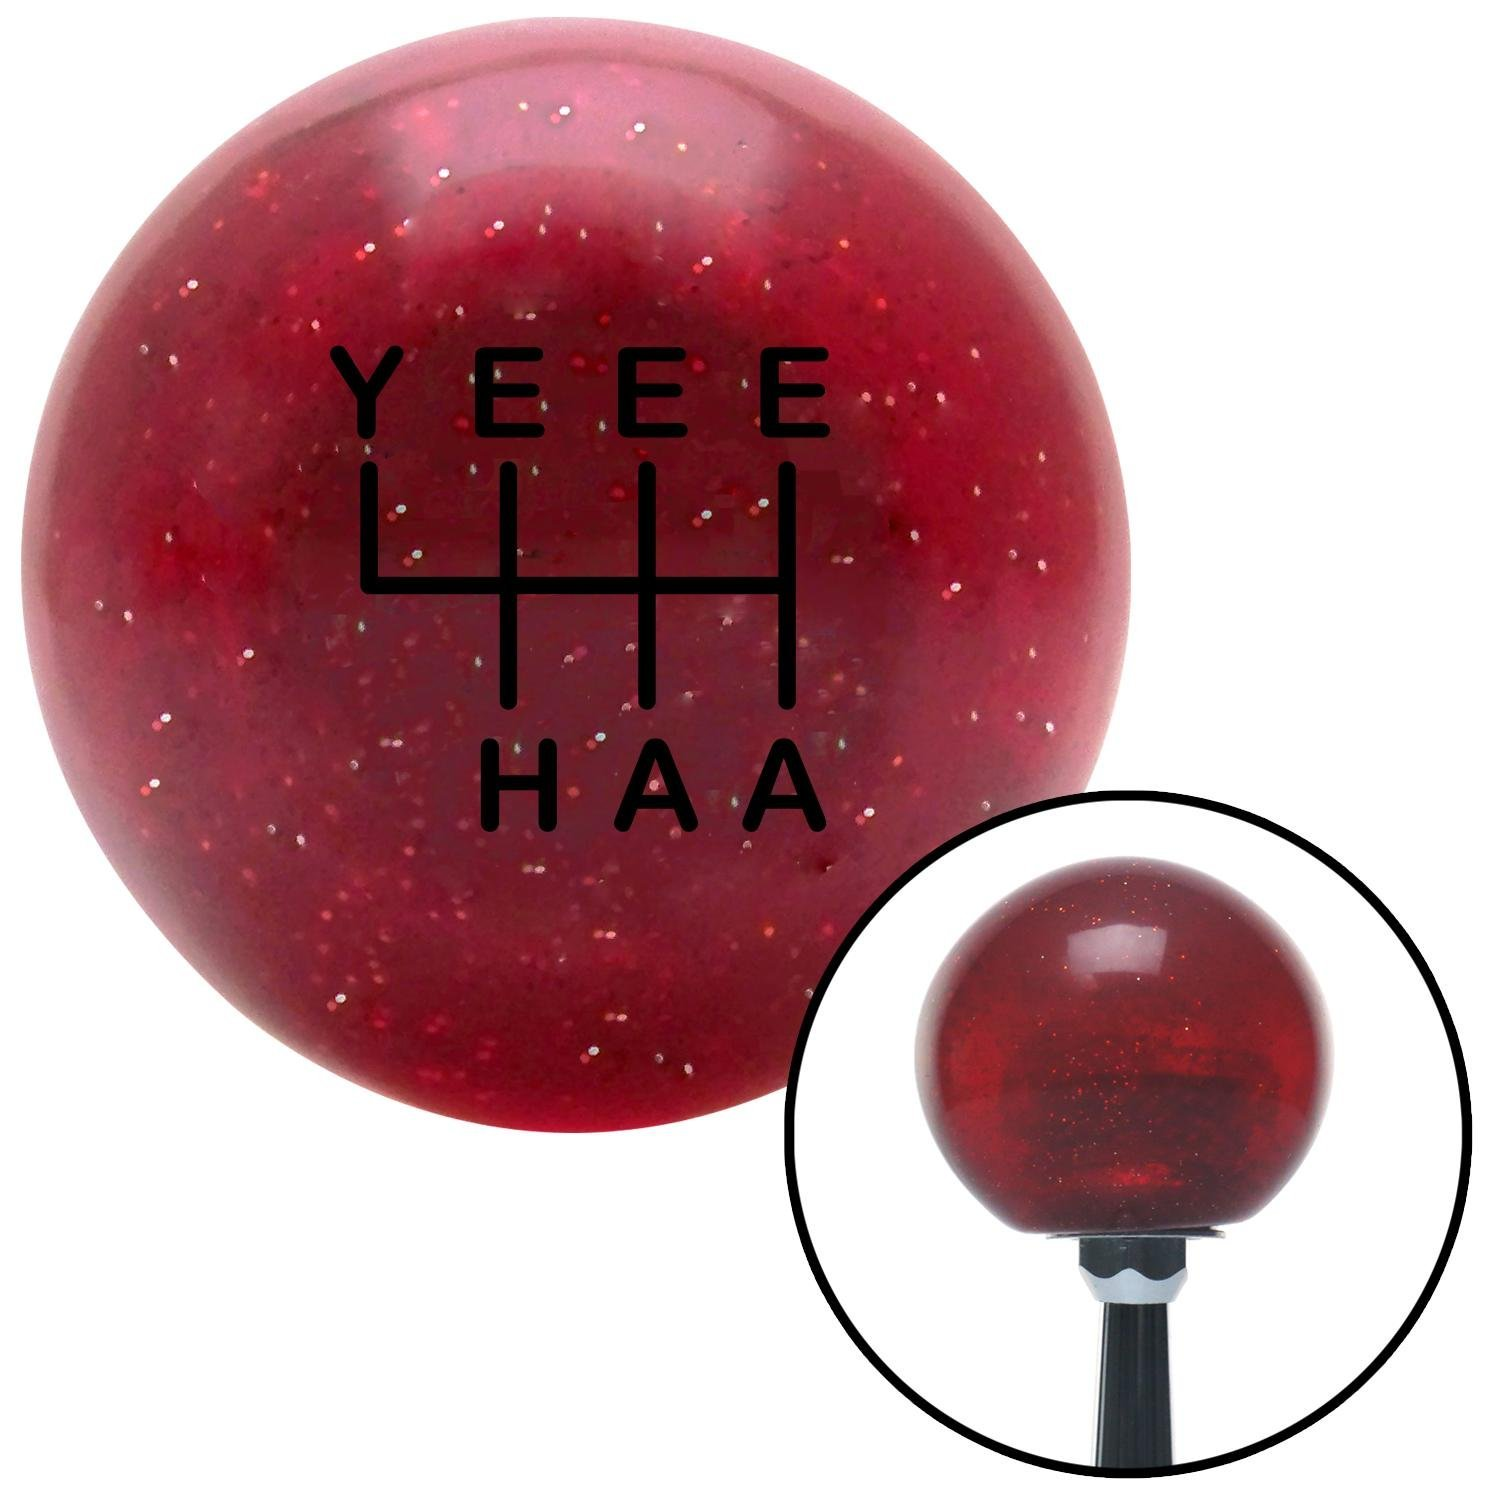 American Shifter 301246 Shift Knob Black YeeeHaa 6 Speed Red Metal Flake with M16 x 1.5 Insert